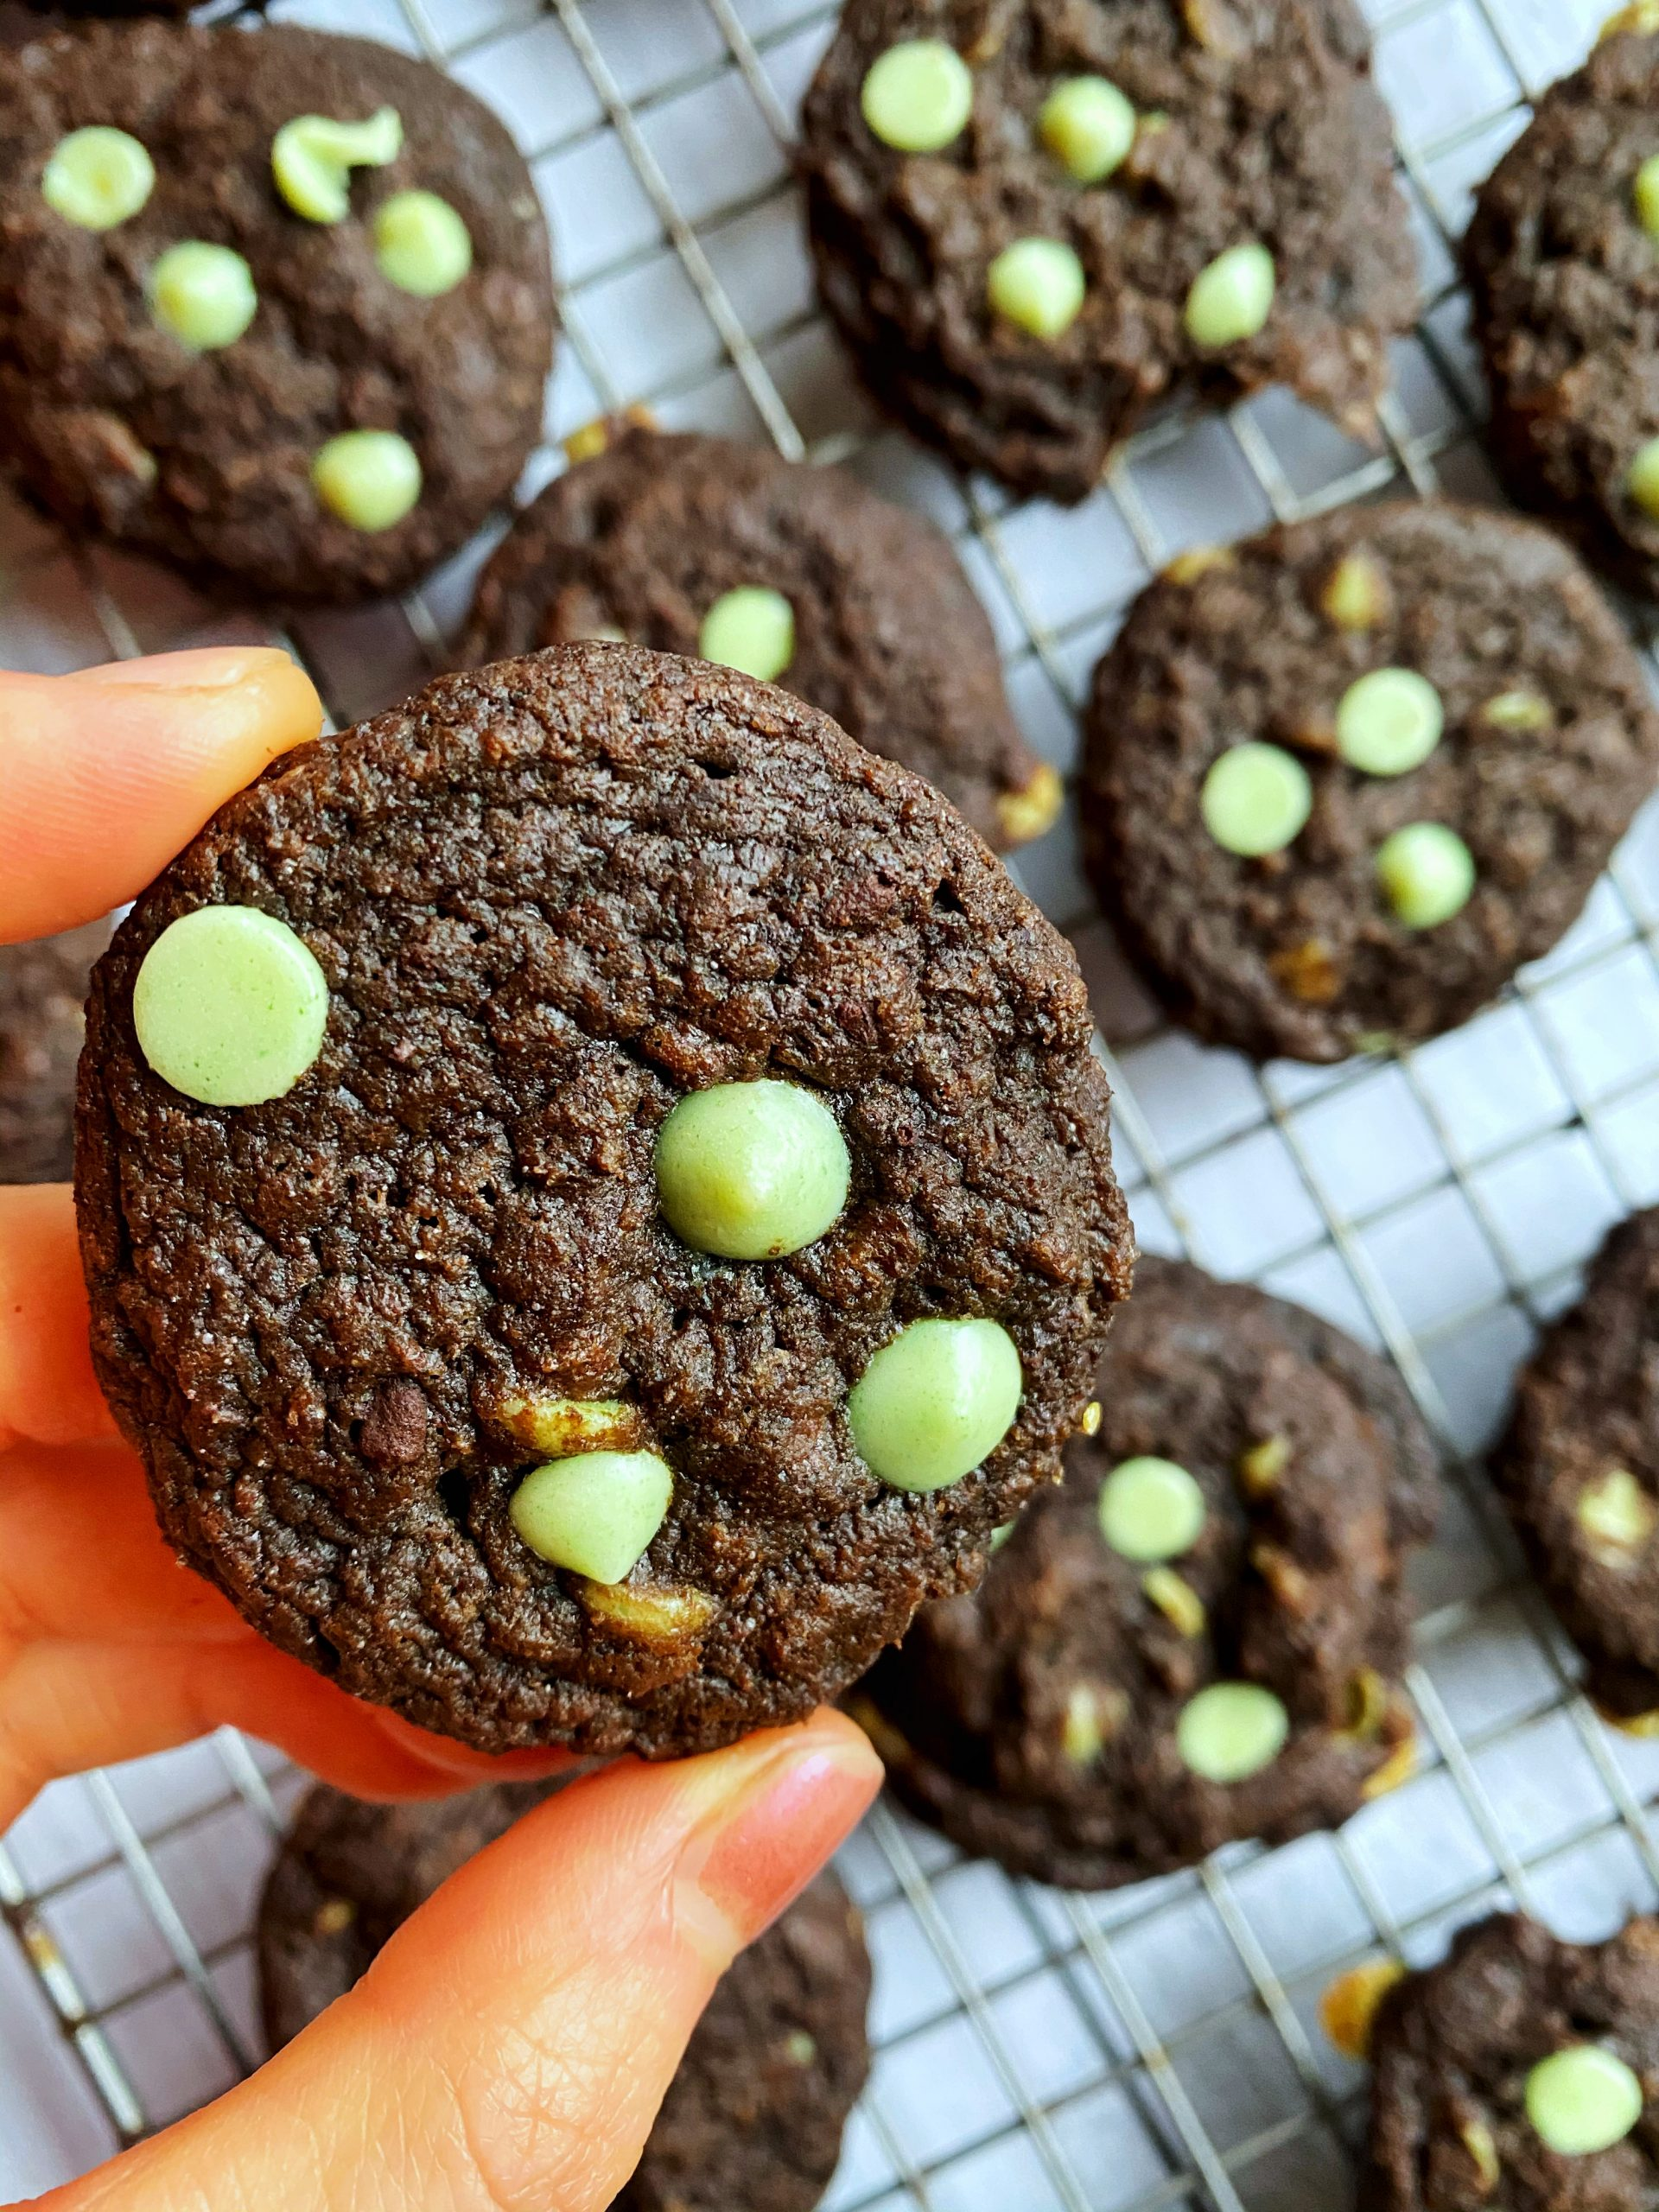 Mint Chocolate Chip Cookies (High protein, low sugar)